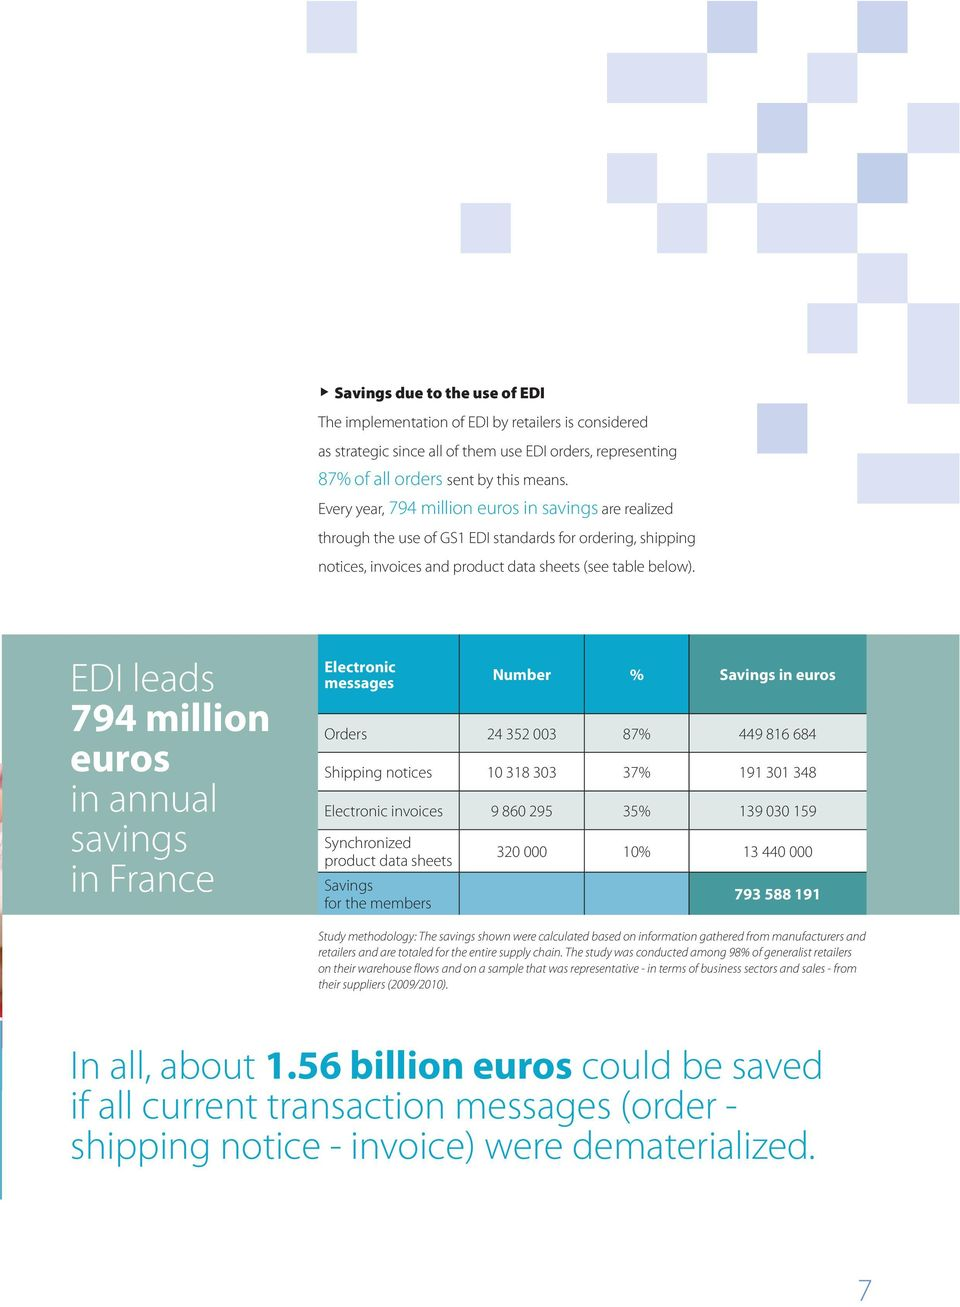 EDI leads 794 million euros in annual savings in France Electronic messages Number % Savings in euros Orders 24 352 003 87% 449 816 684 Shipping notices 10 318 303 37% 191 301 348 Electronic invoices